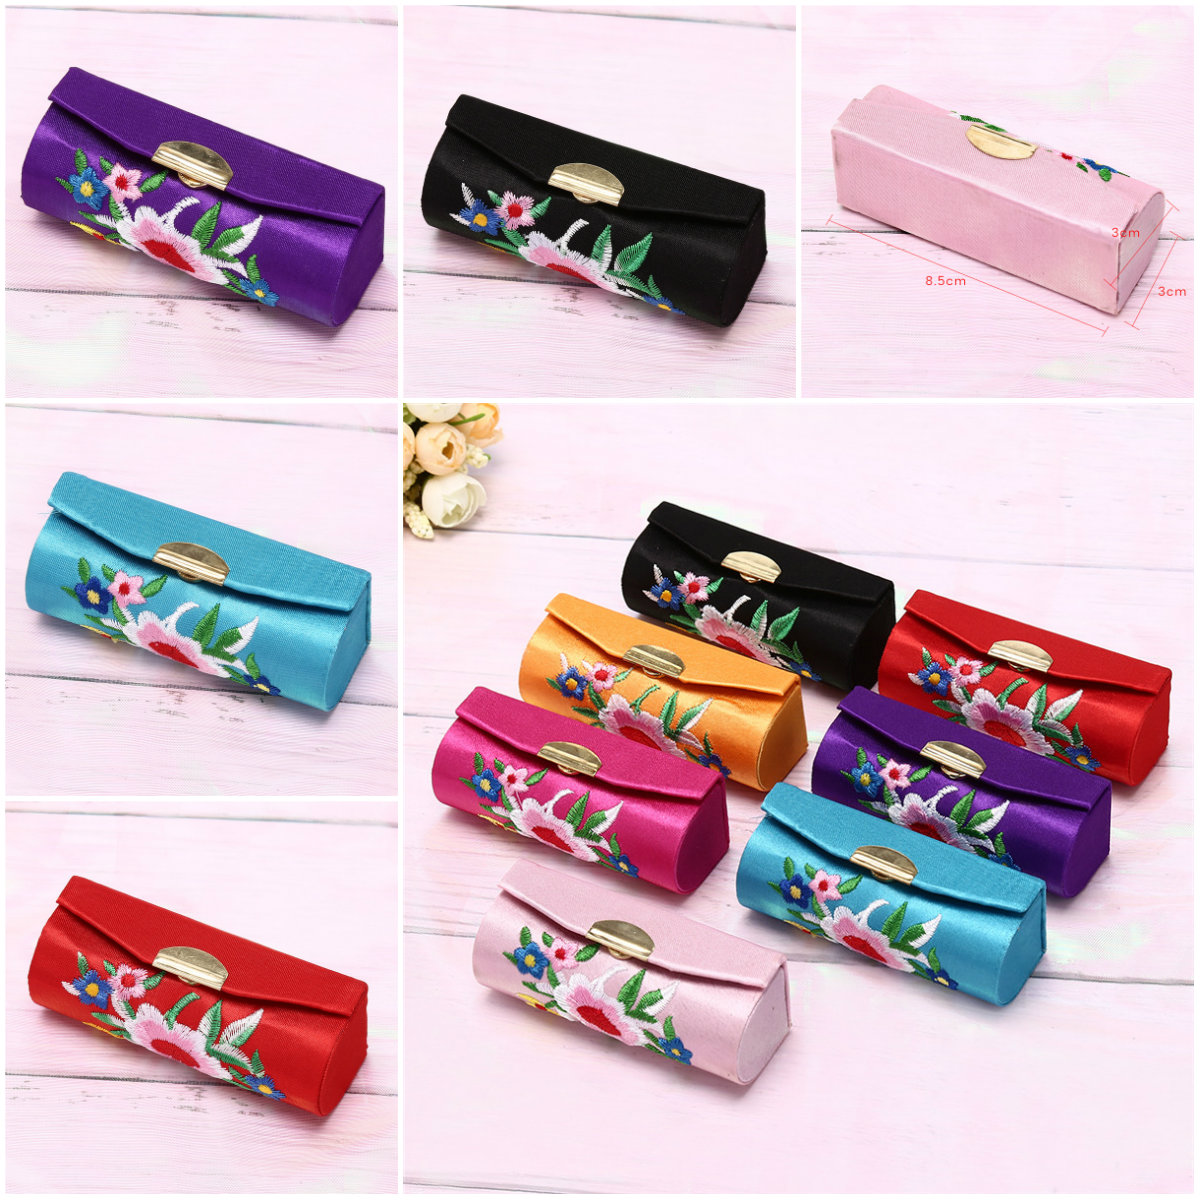 Fashion Holder Flower Design Lipstick Case Retro Embroidered  With Mirror Jewelry Packaging Box